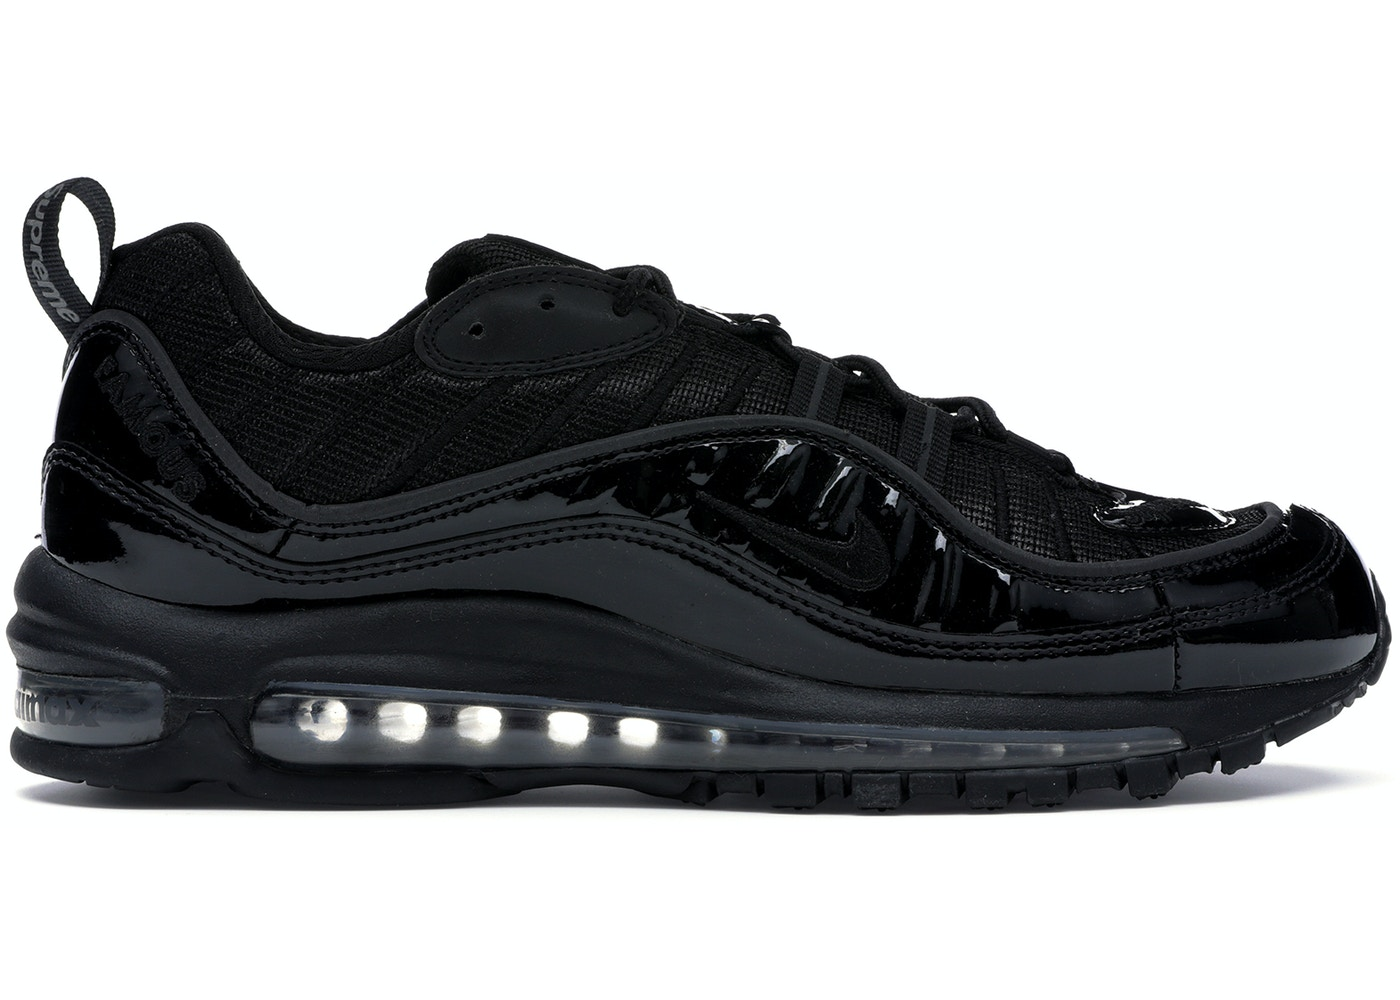 uk availability a376e 09b7b Air Max 98 Supreme Black